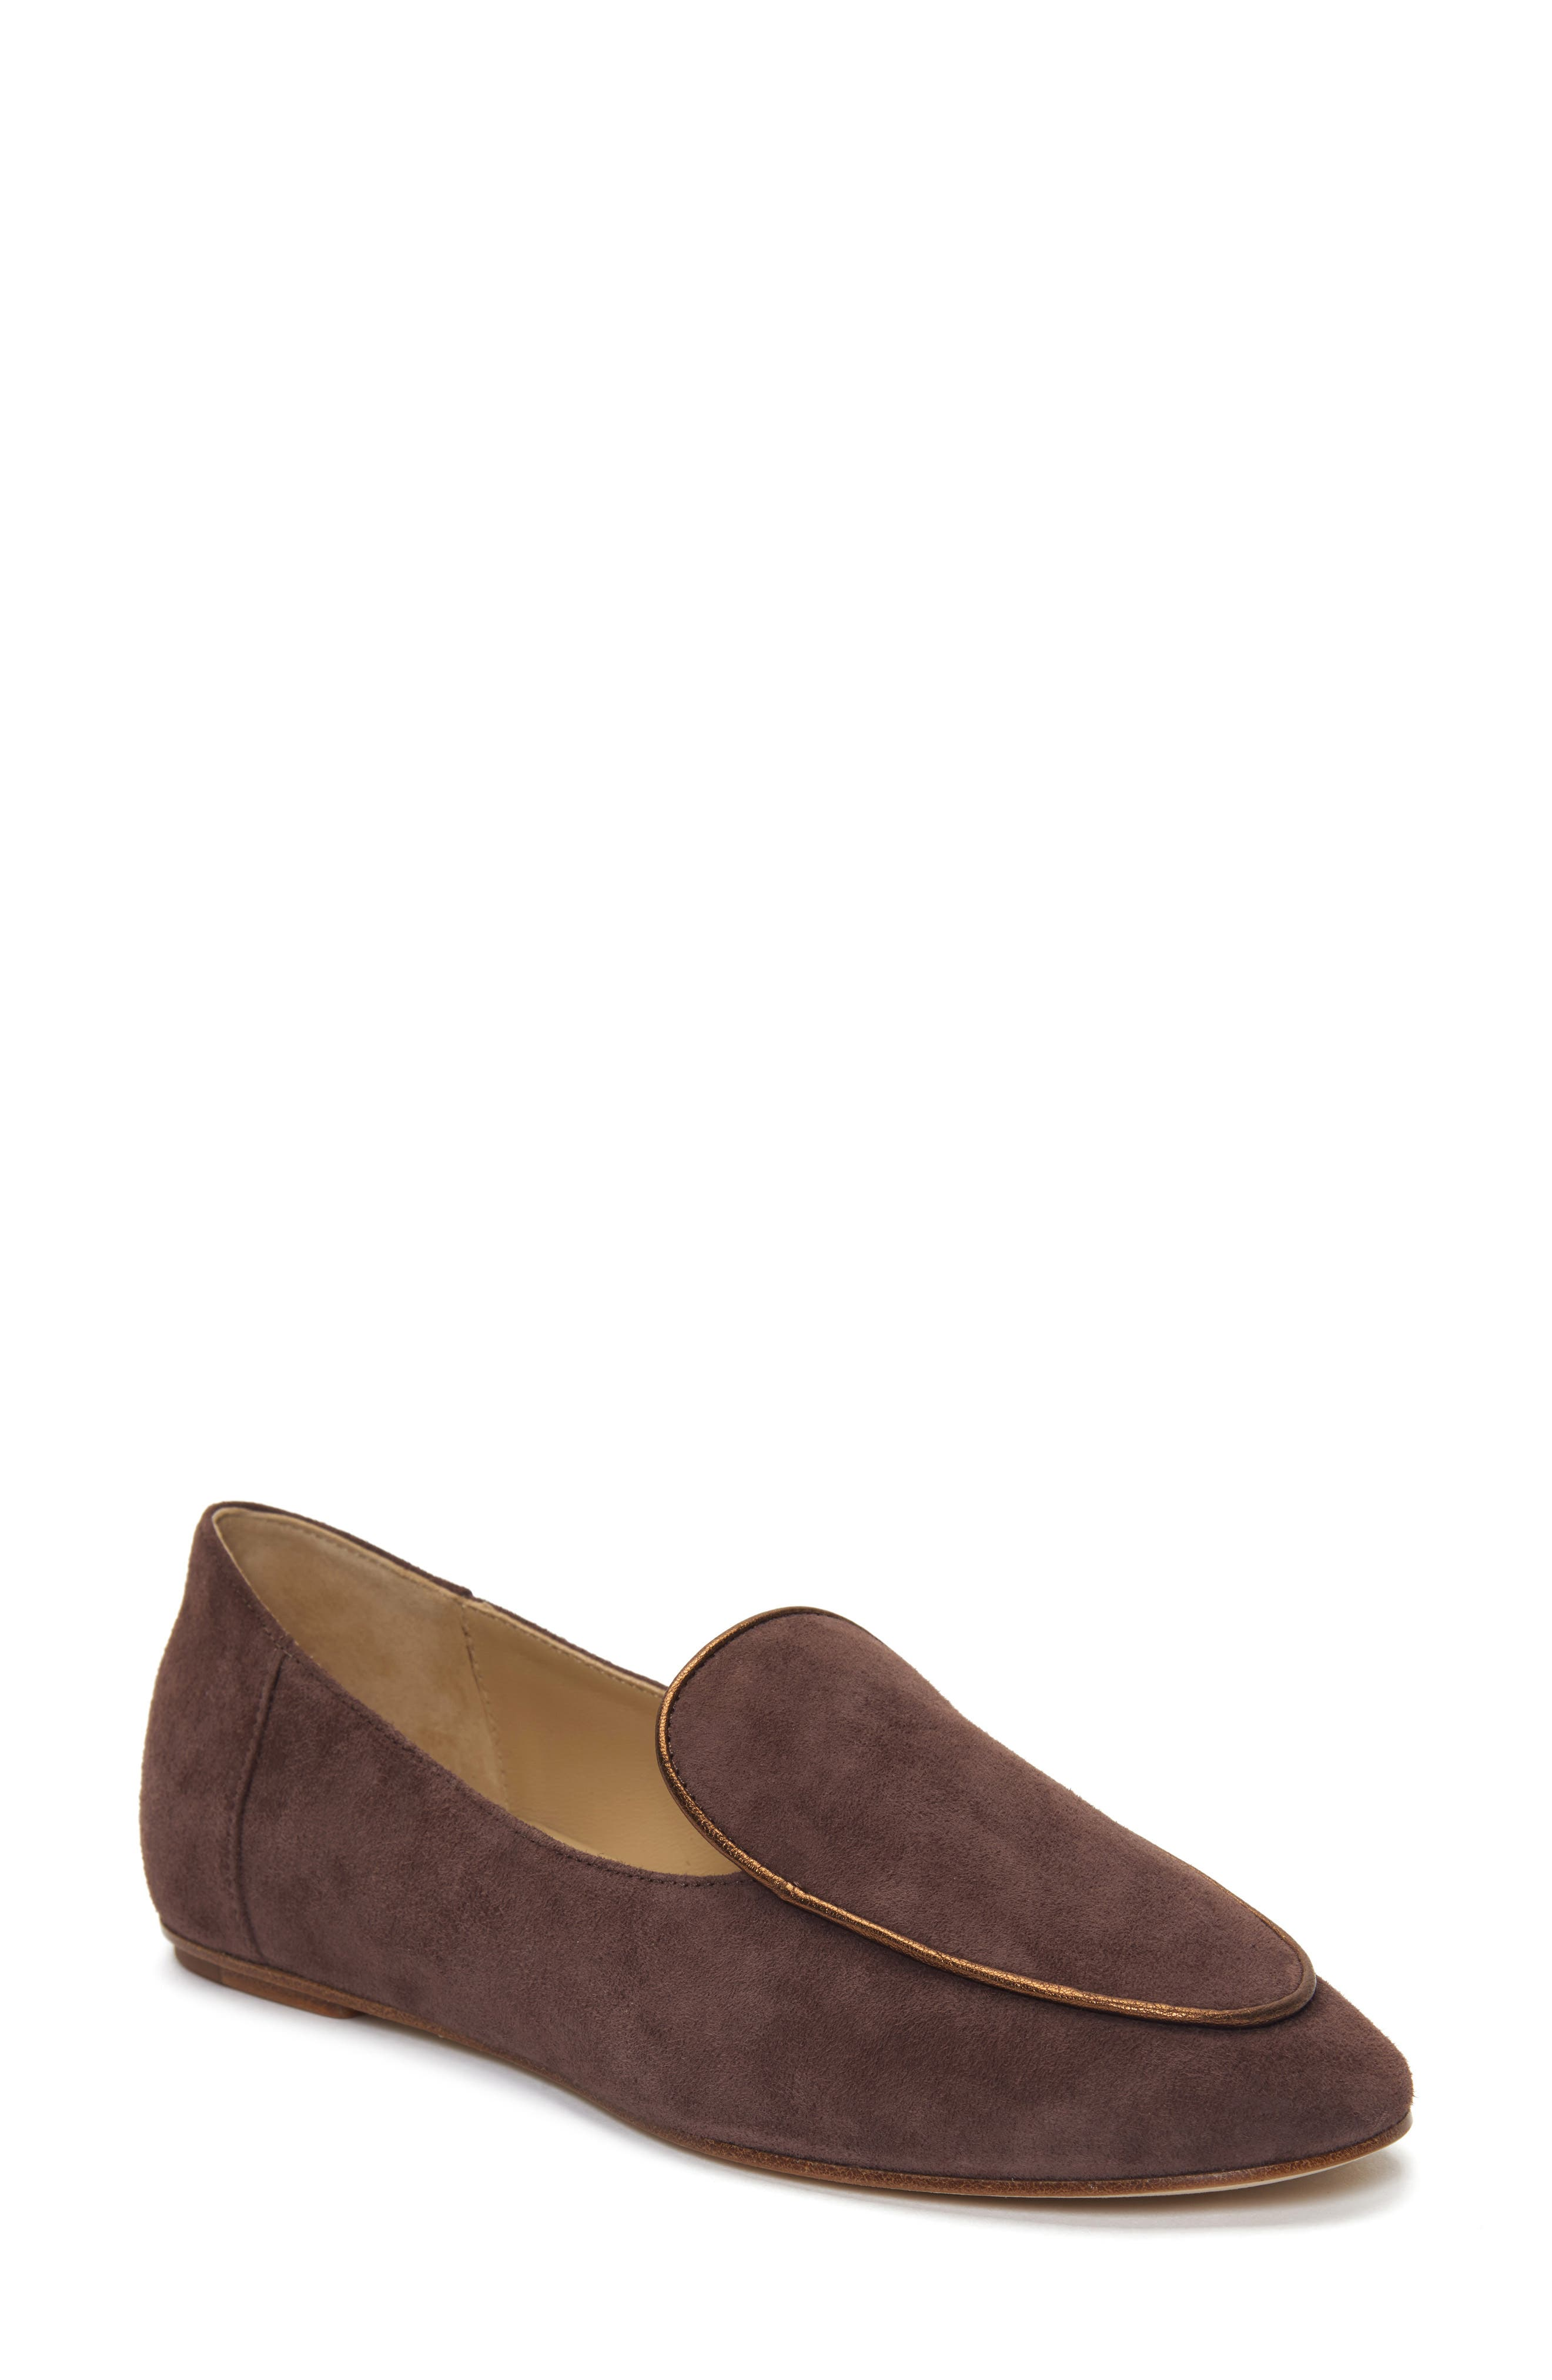 ETIENNE AIGNER Camille Loafer in Coffee Suede